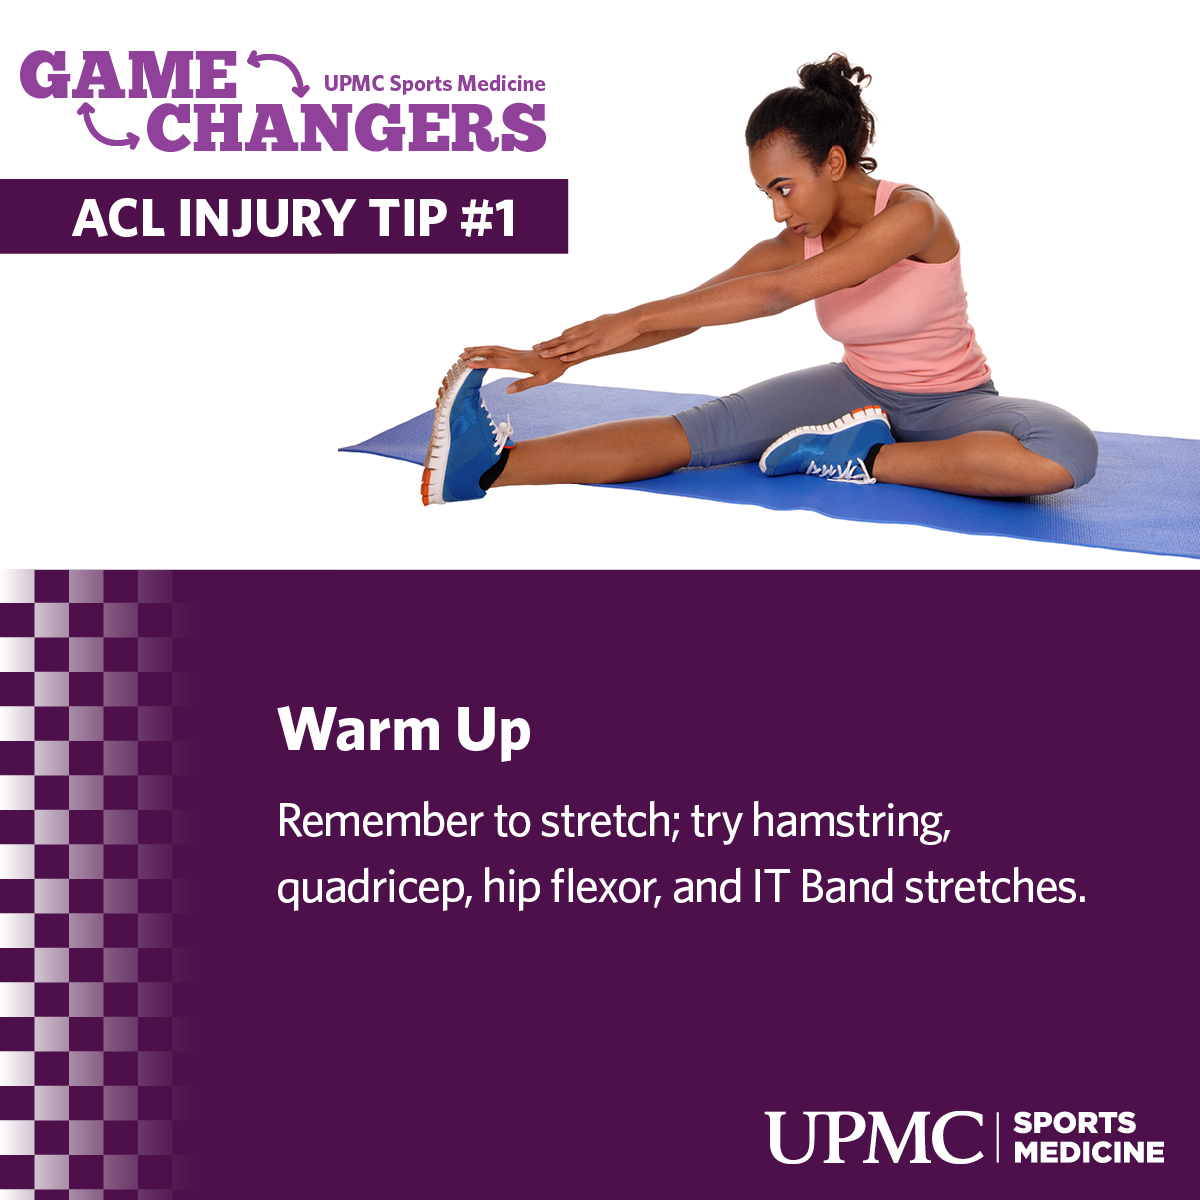 UPMC_GameChangers_ACL_FB1_FINAL